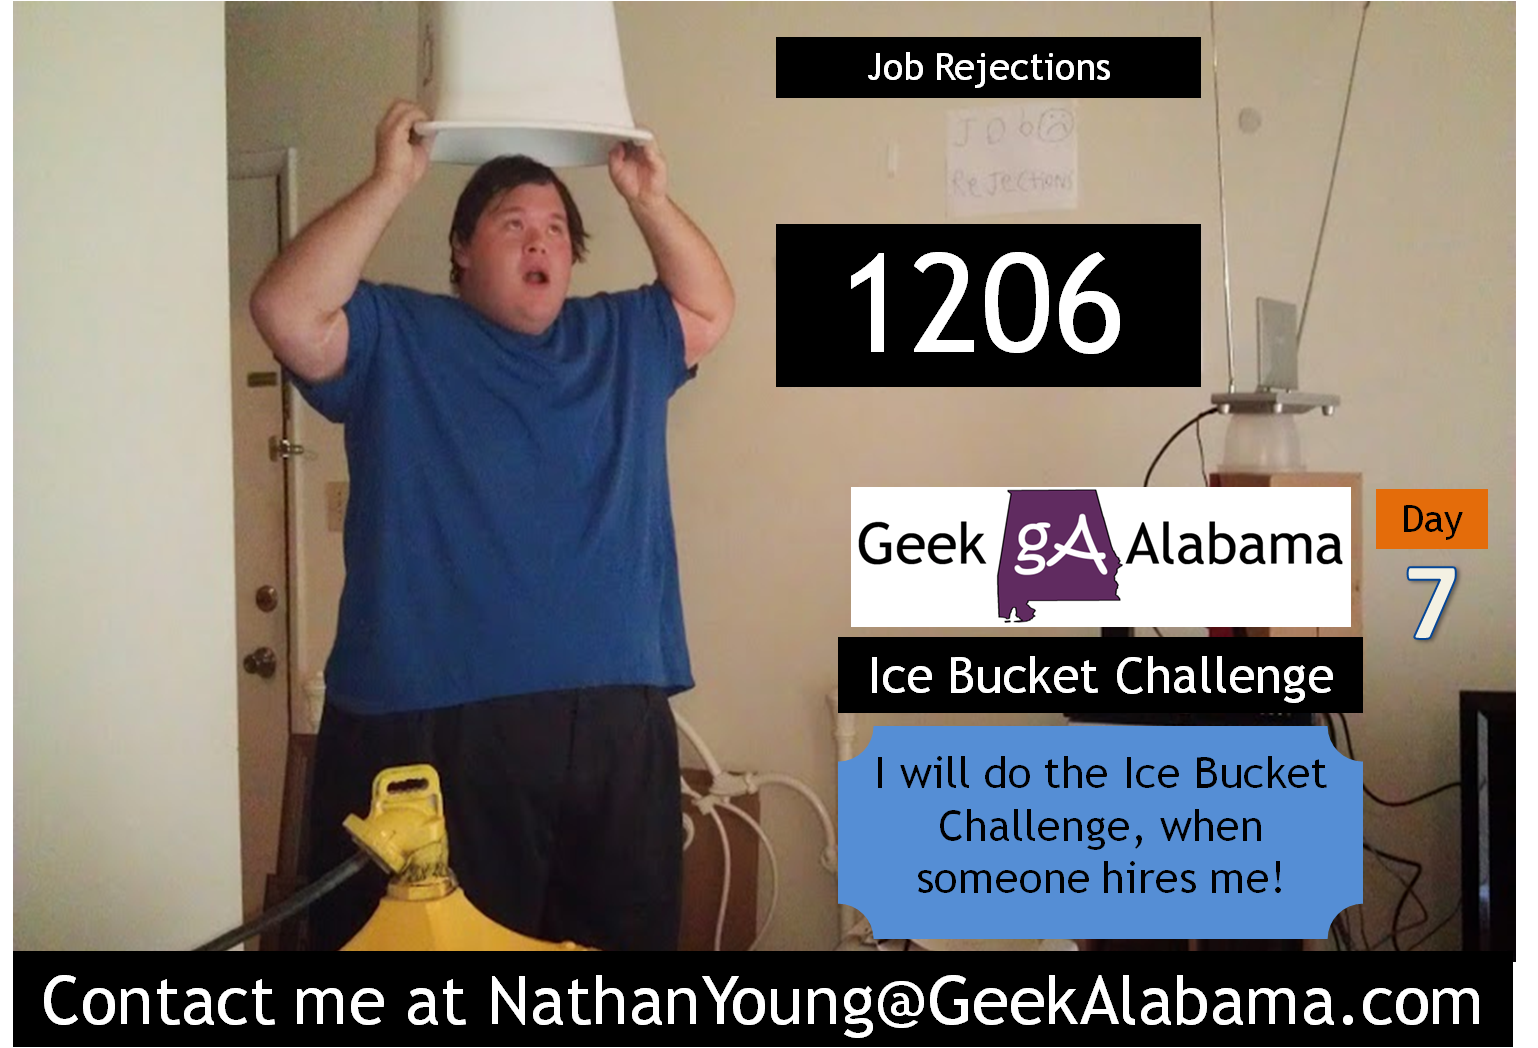 Nathan Young on Twitter: Day 7 of the Job Search Ice Bucket Challenge, still at 1,206 job rejections. #IceBucketChallenge http://t.co/l2FFkCnMdg